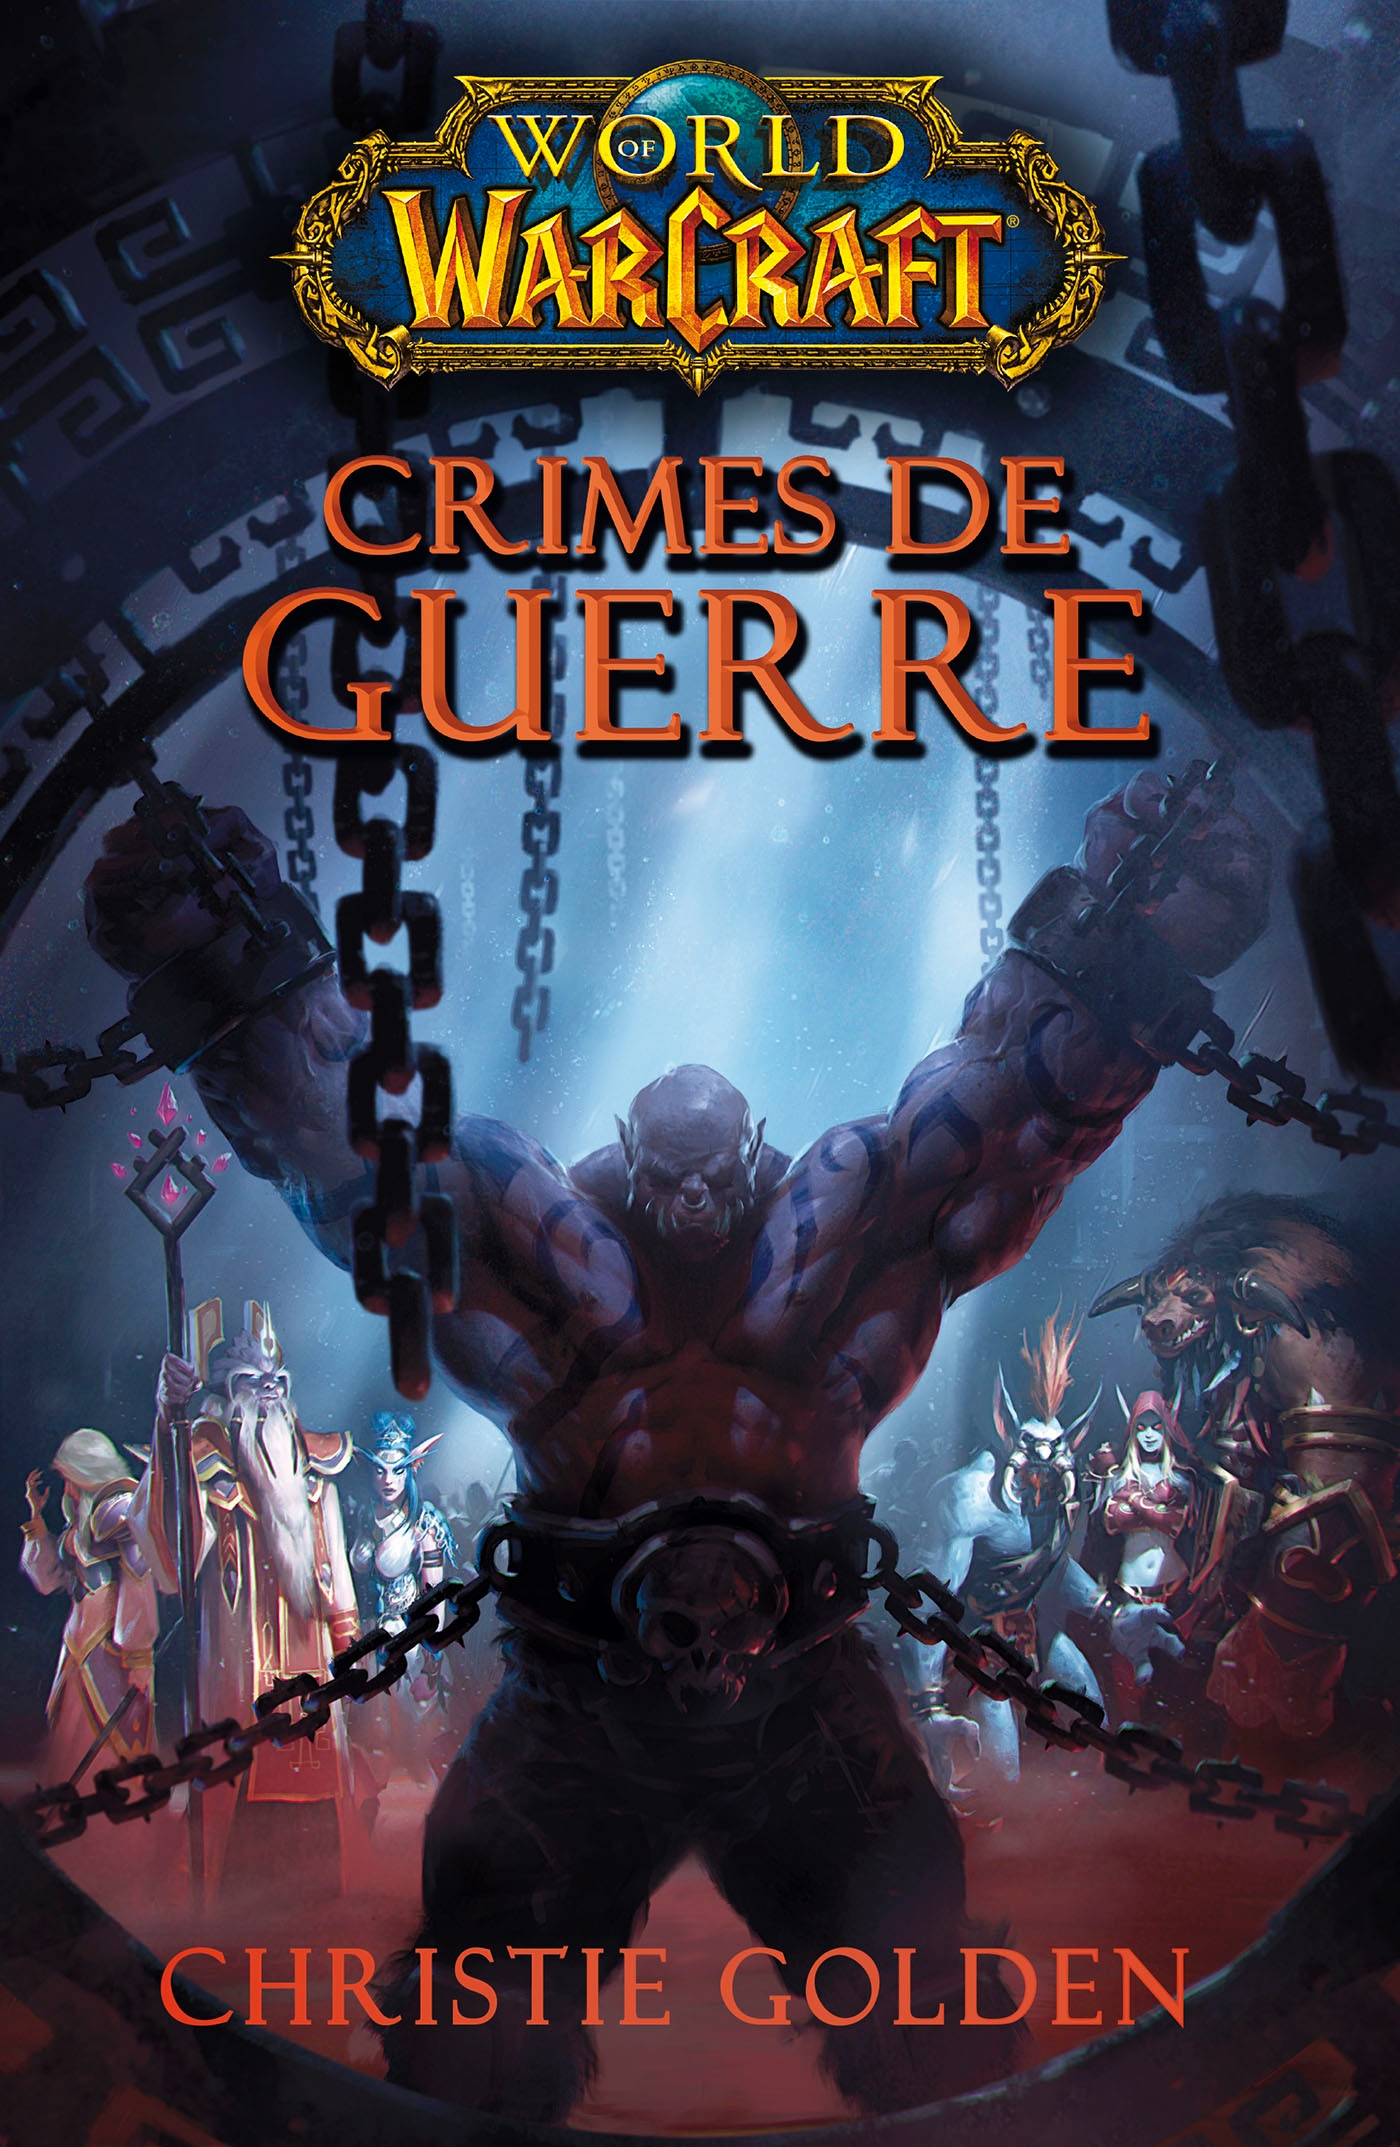 World of Warcraft - Crimes de guerre